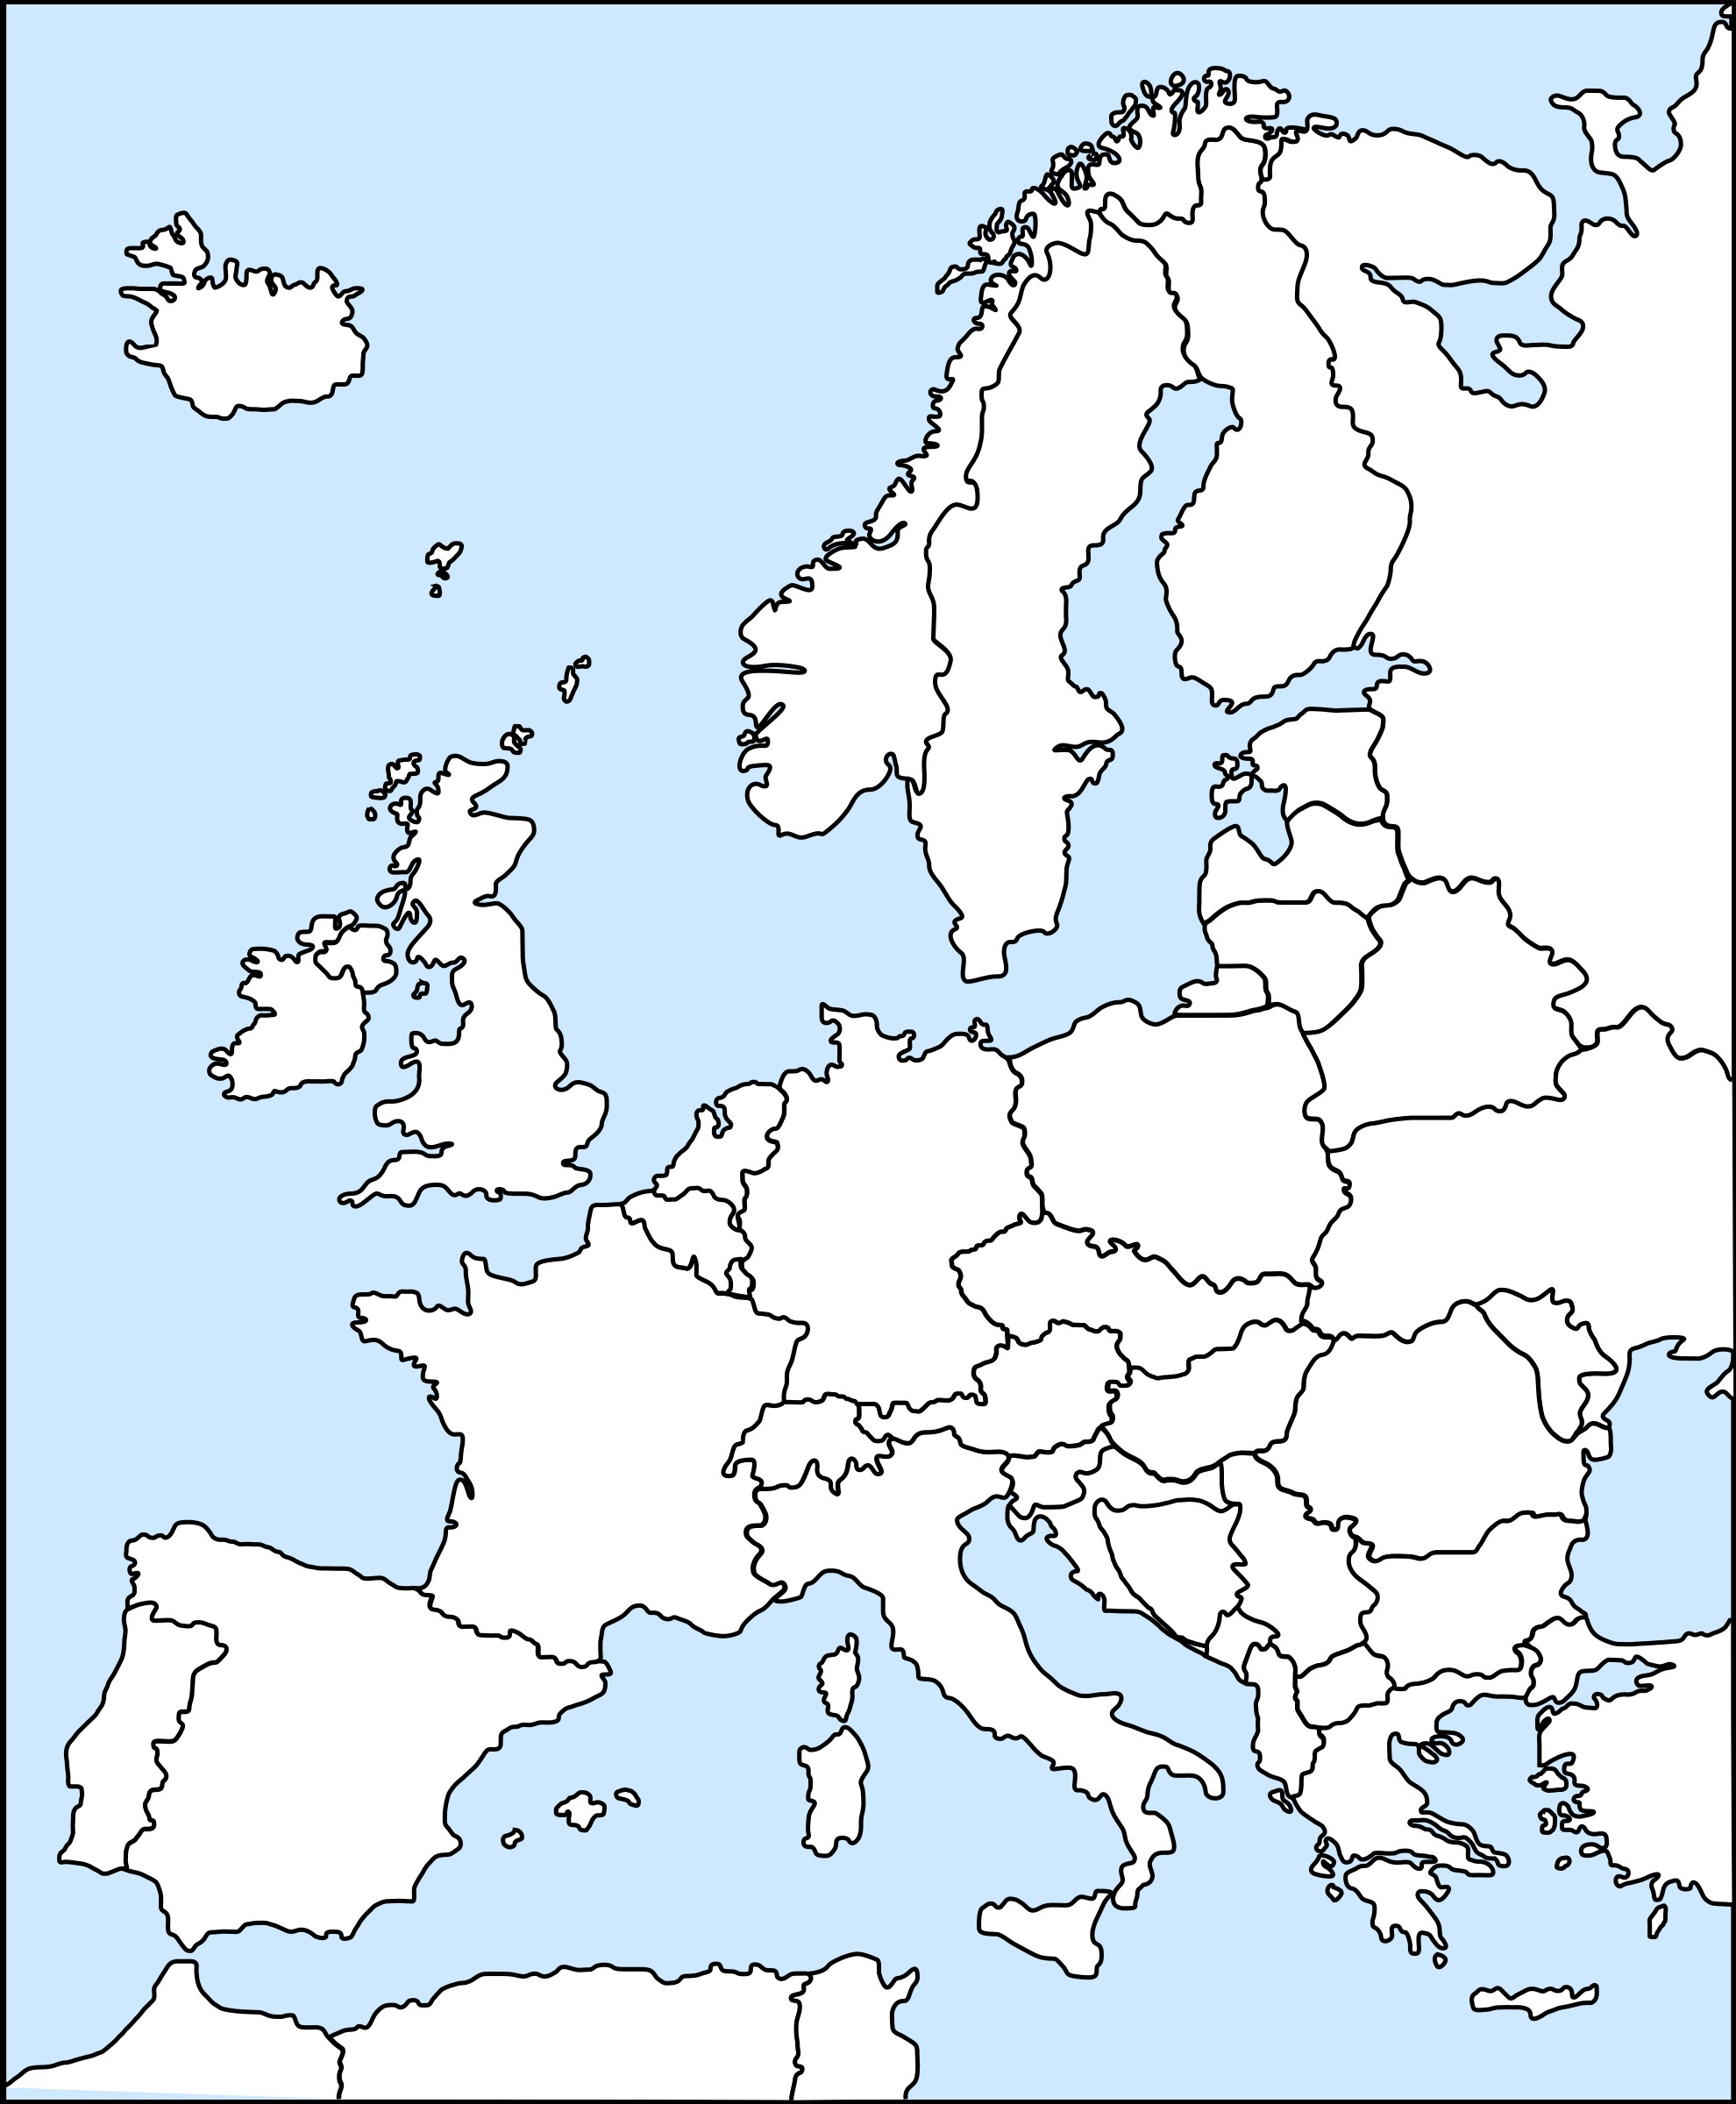 Europe clipart blank. World map of inspirationa